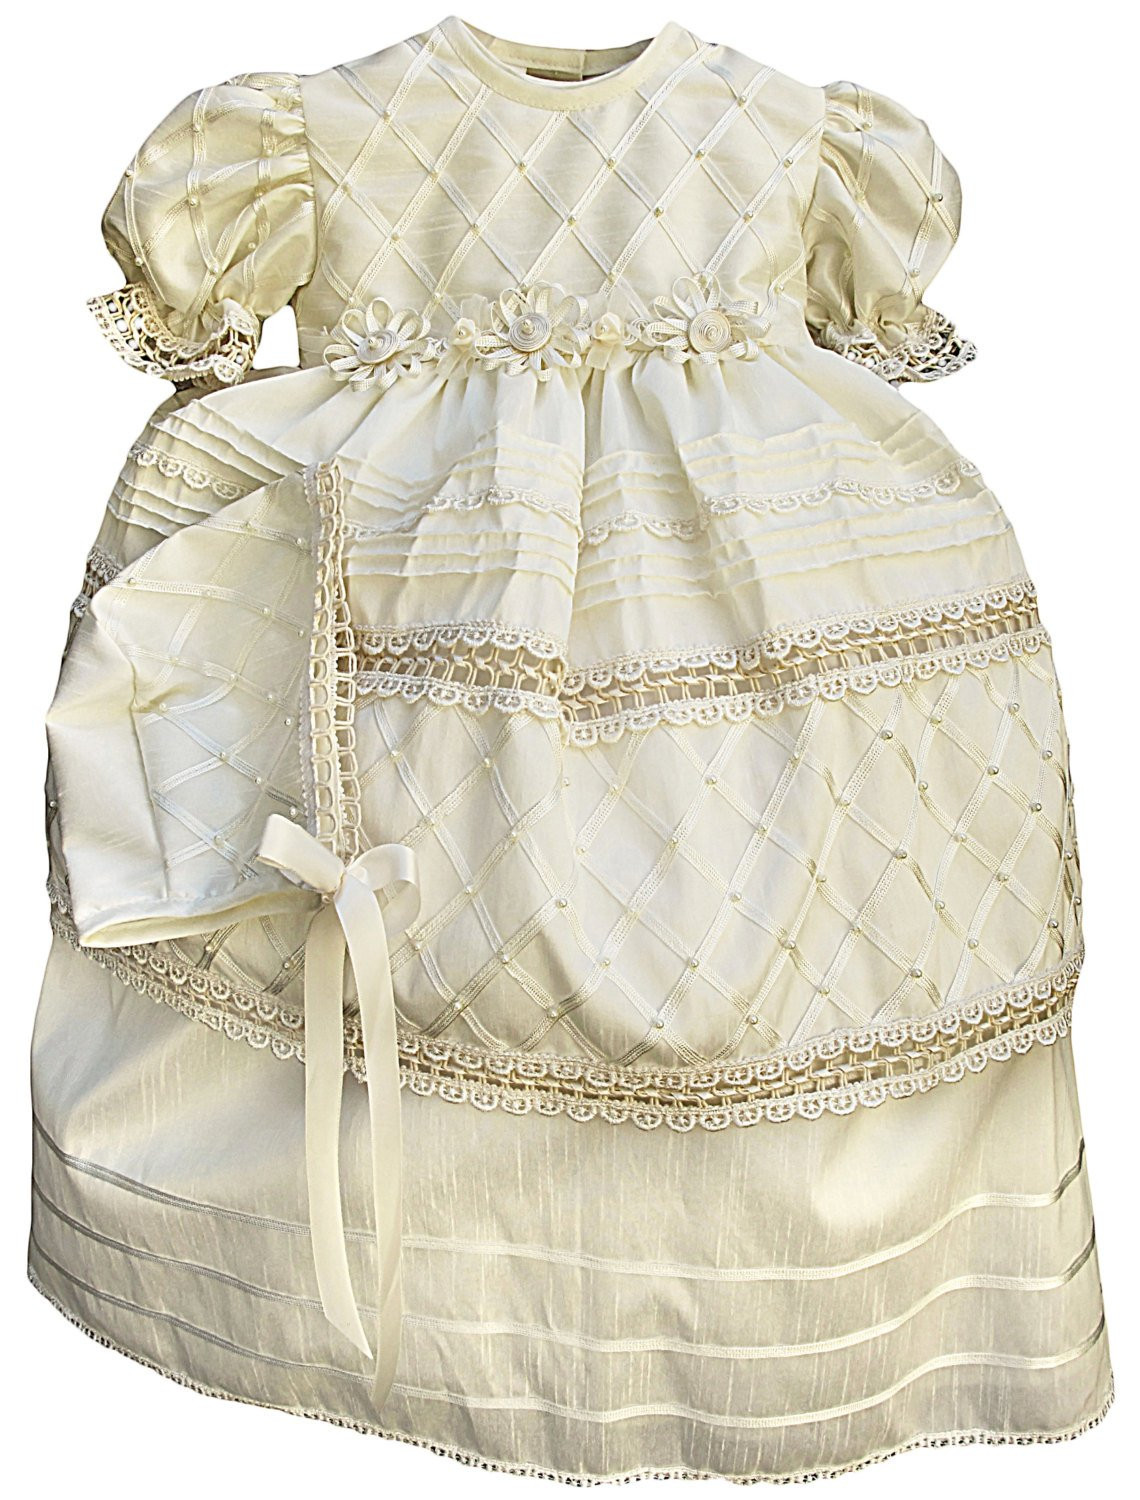 Baby Christening Gowns Best Of Vintage Christening Gown for Girl Baptism Dress G001 Of Incredible 40 Models Baby Christening Gowns